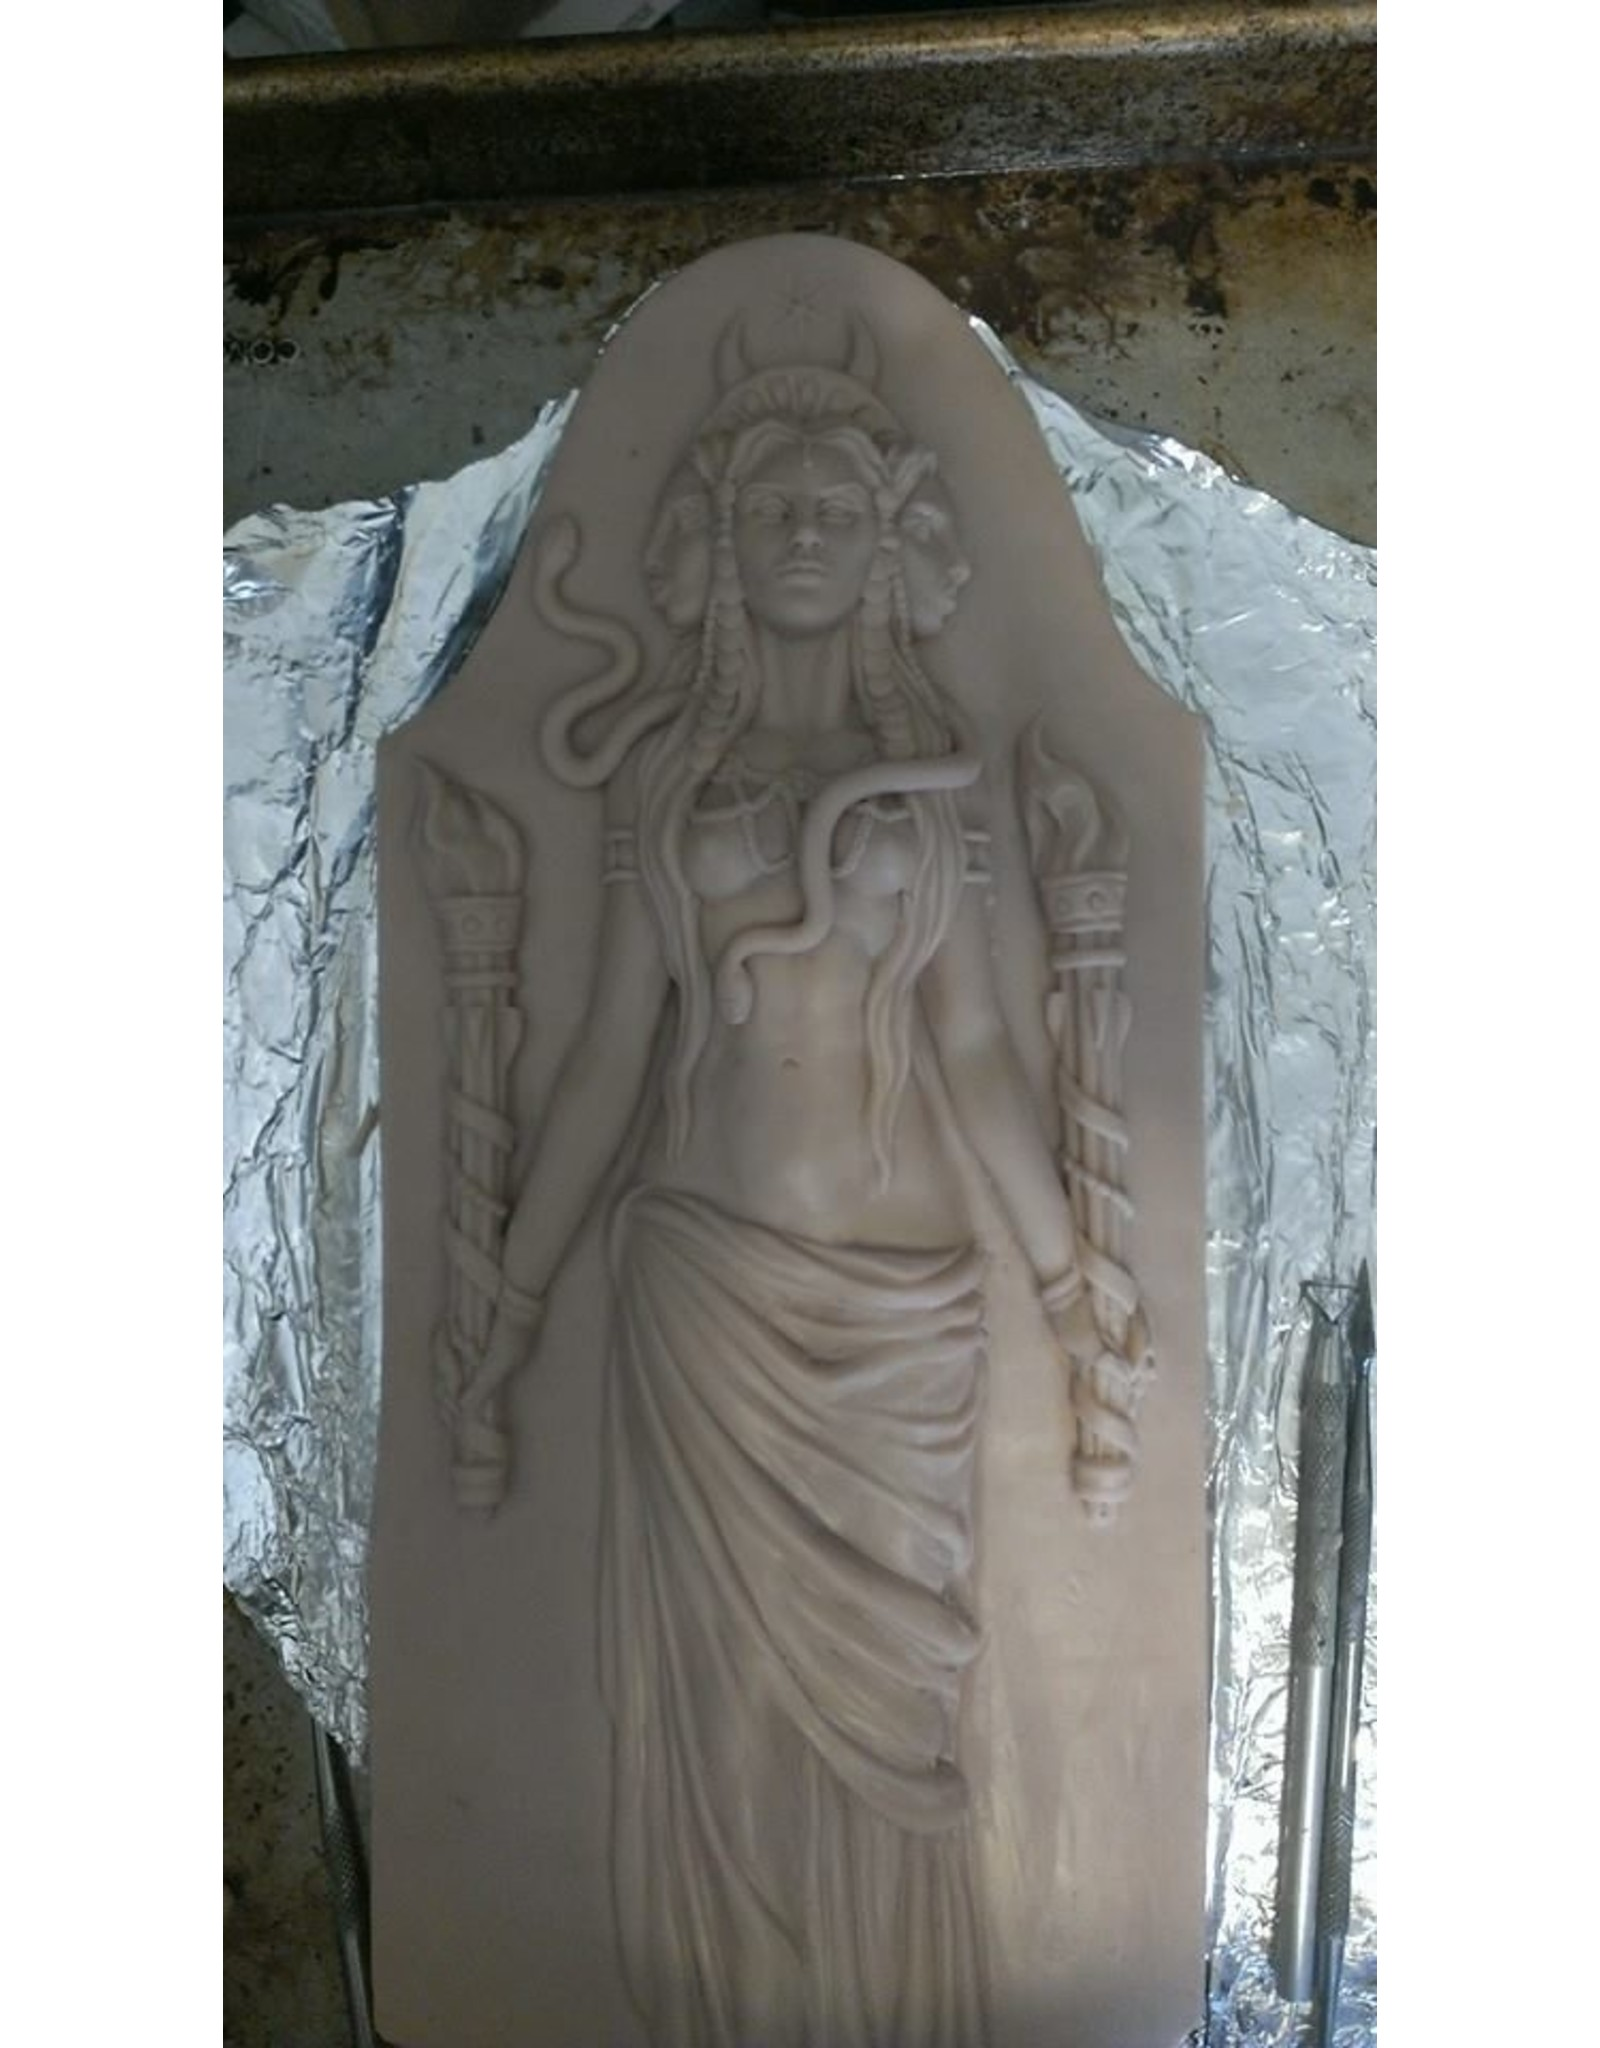 Hekate Plaque by Jeff Cullen